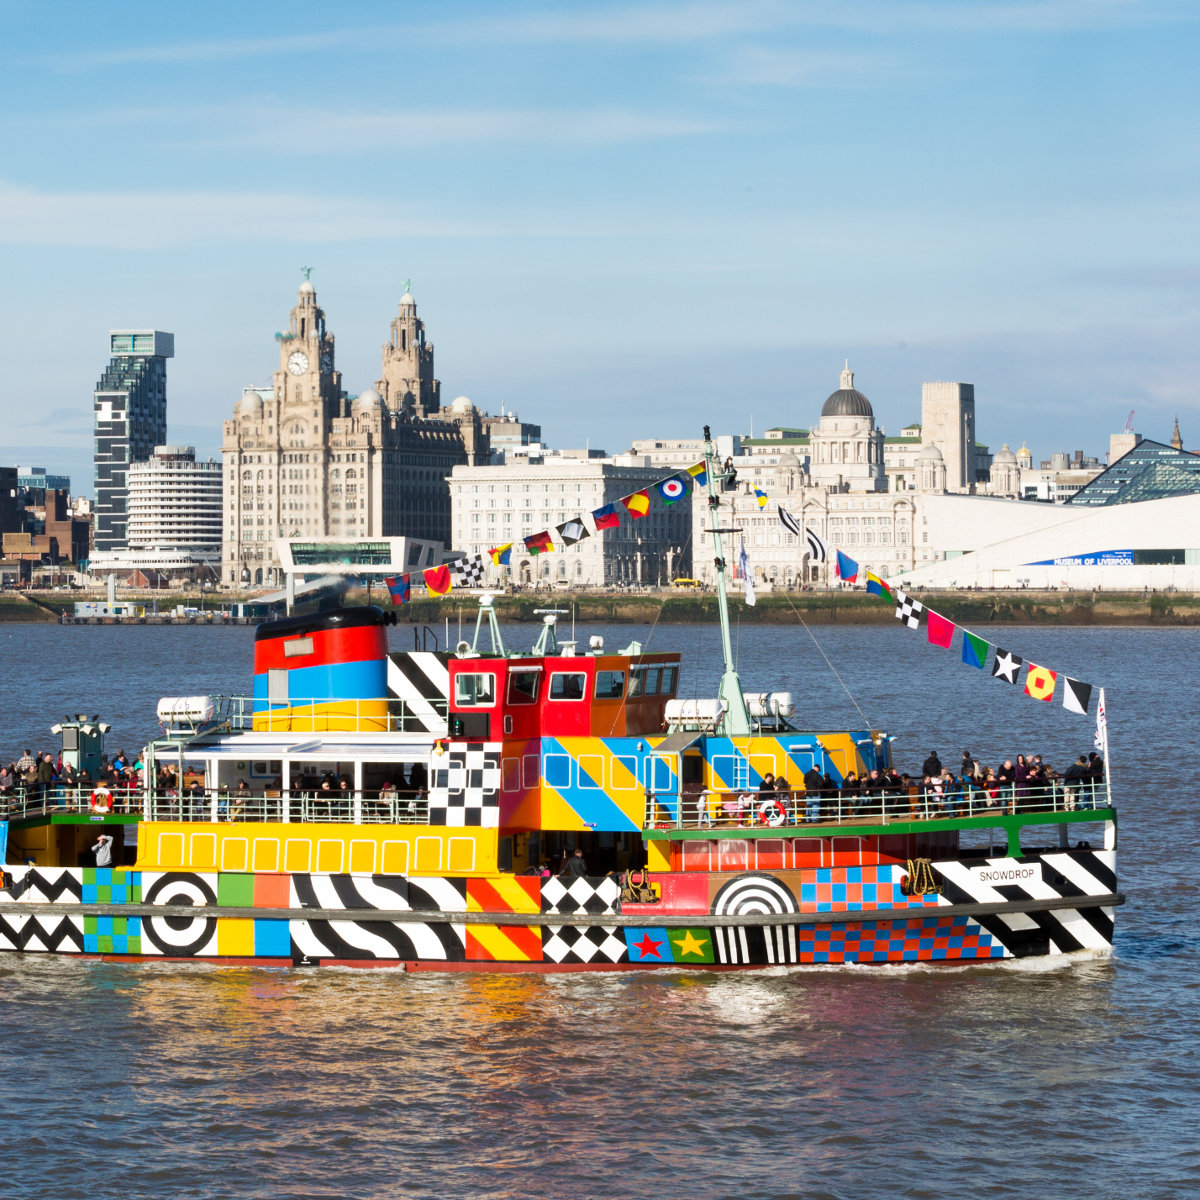 Mersey Ferries have a selection of cruises throughout the year